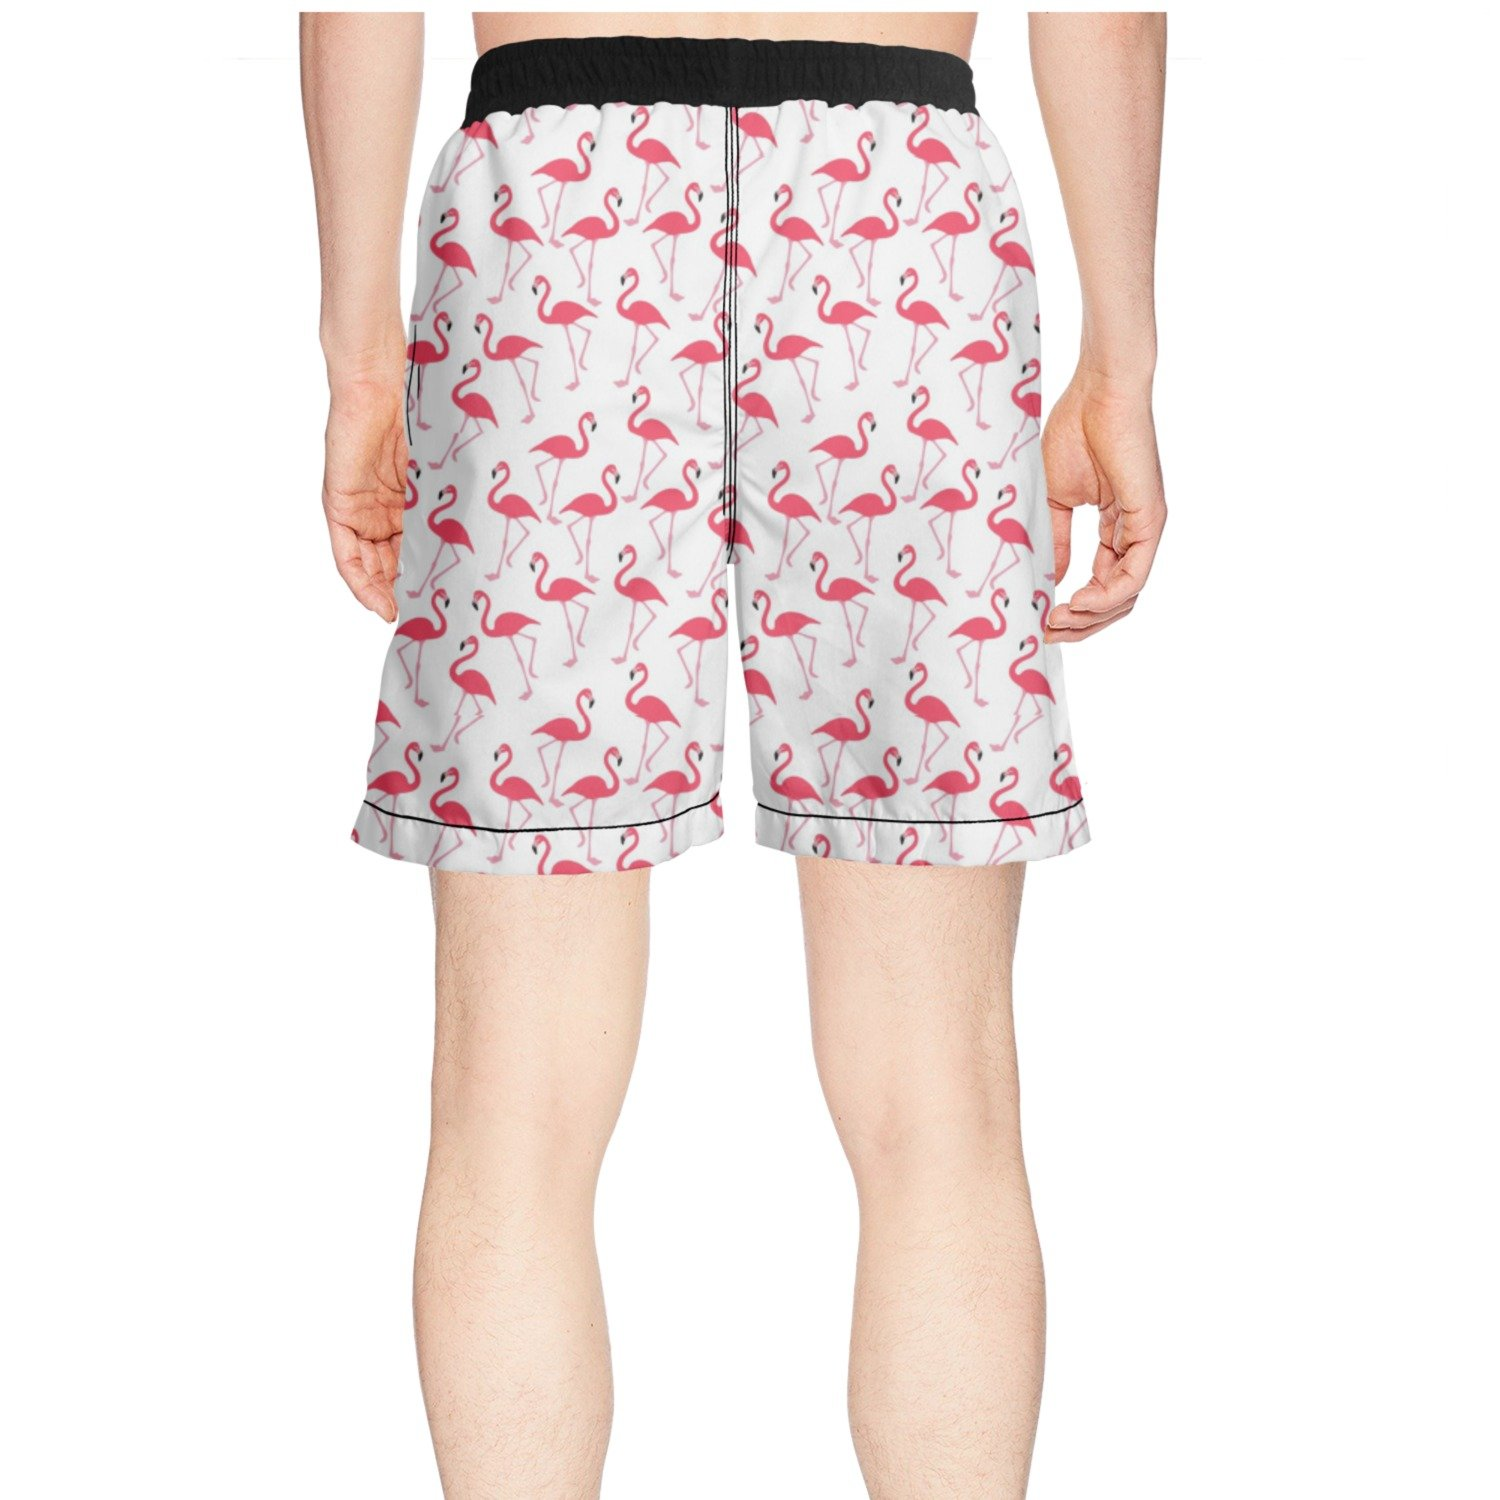 Eoyles Flamingo Red Beautiful Flower Summer Beachwear Quick Dry Shorts For Beach For Men Unique Trunks